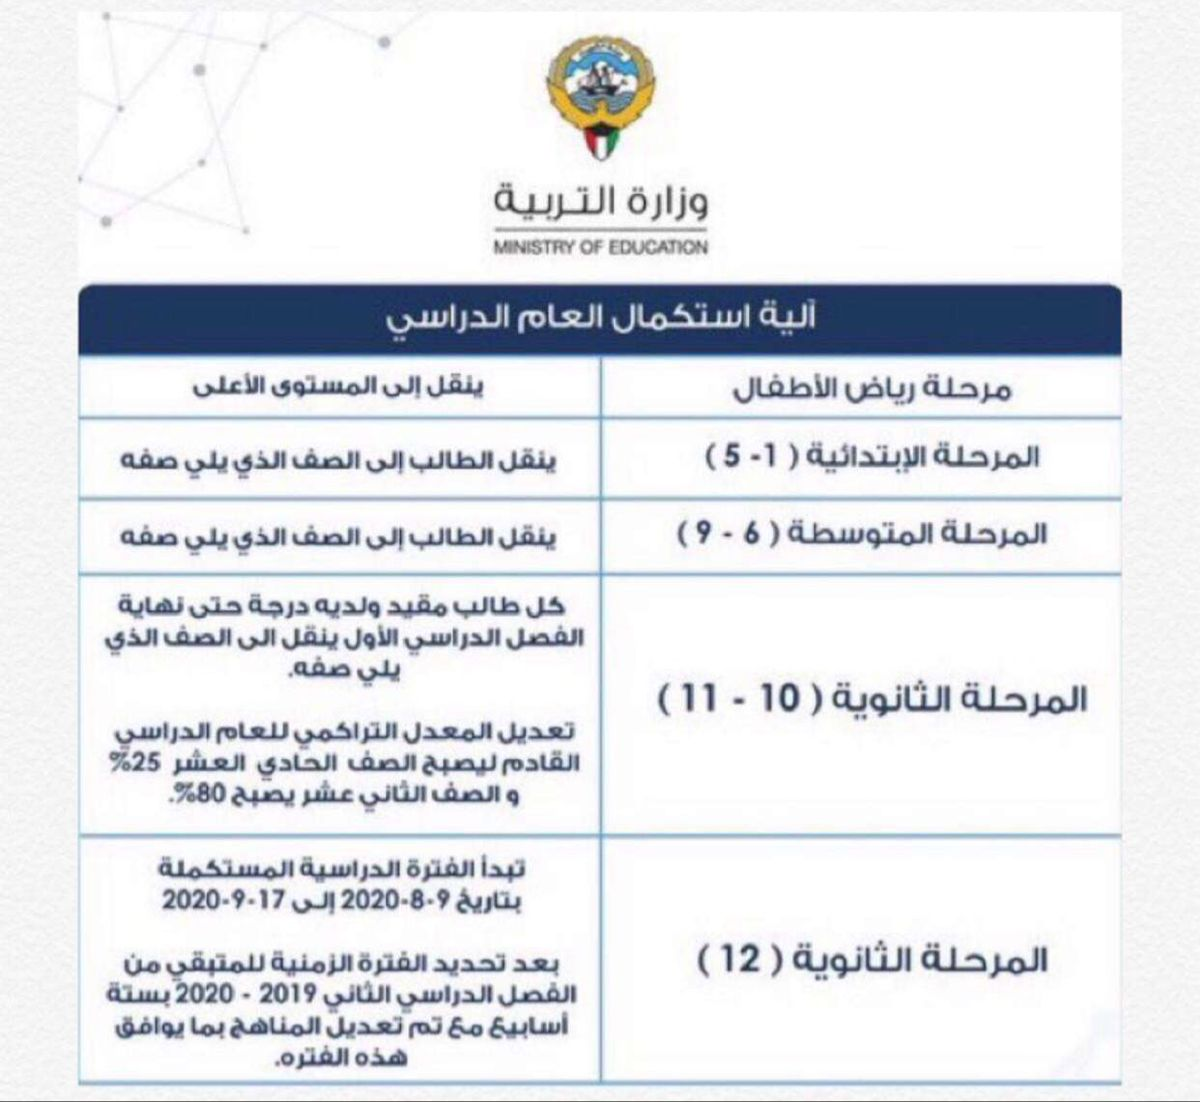 Pin By روابى المطيرى On صور Ministry Of Education Education Ministry